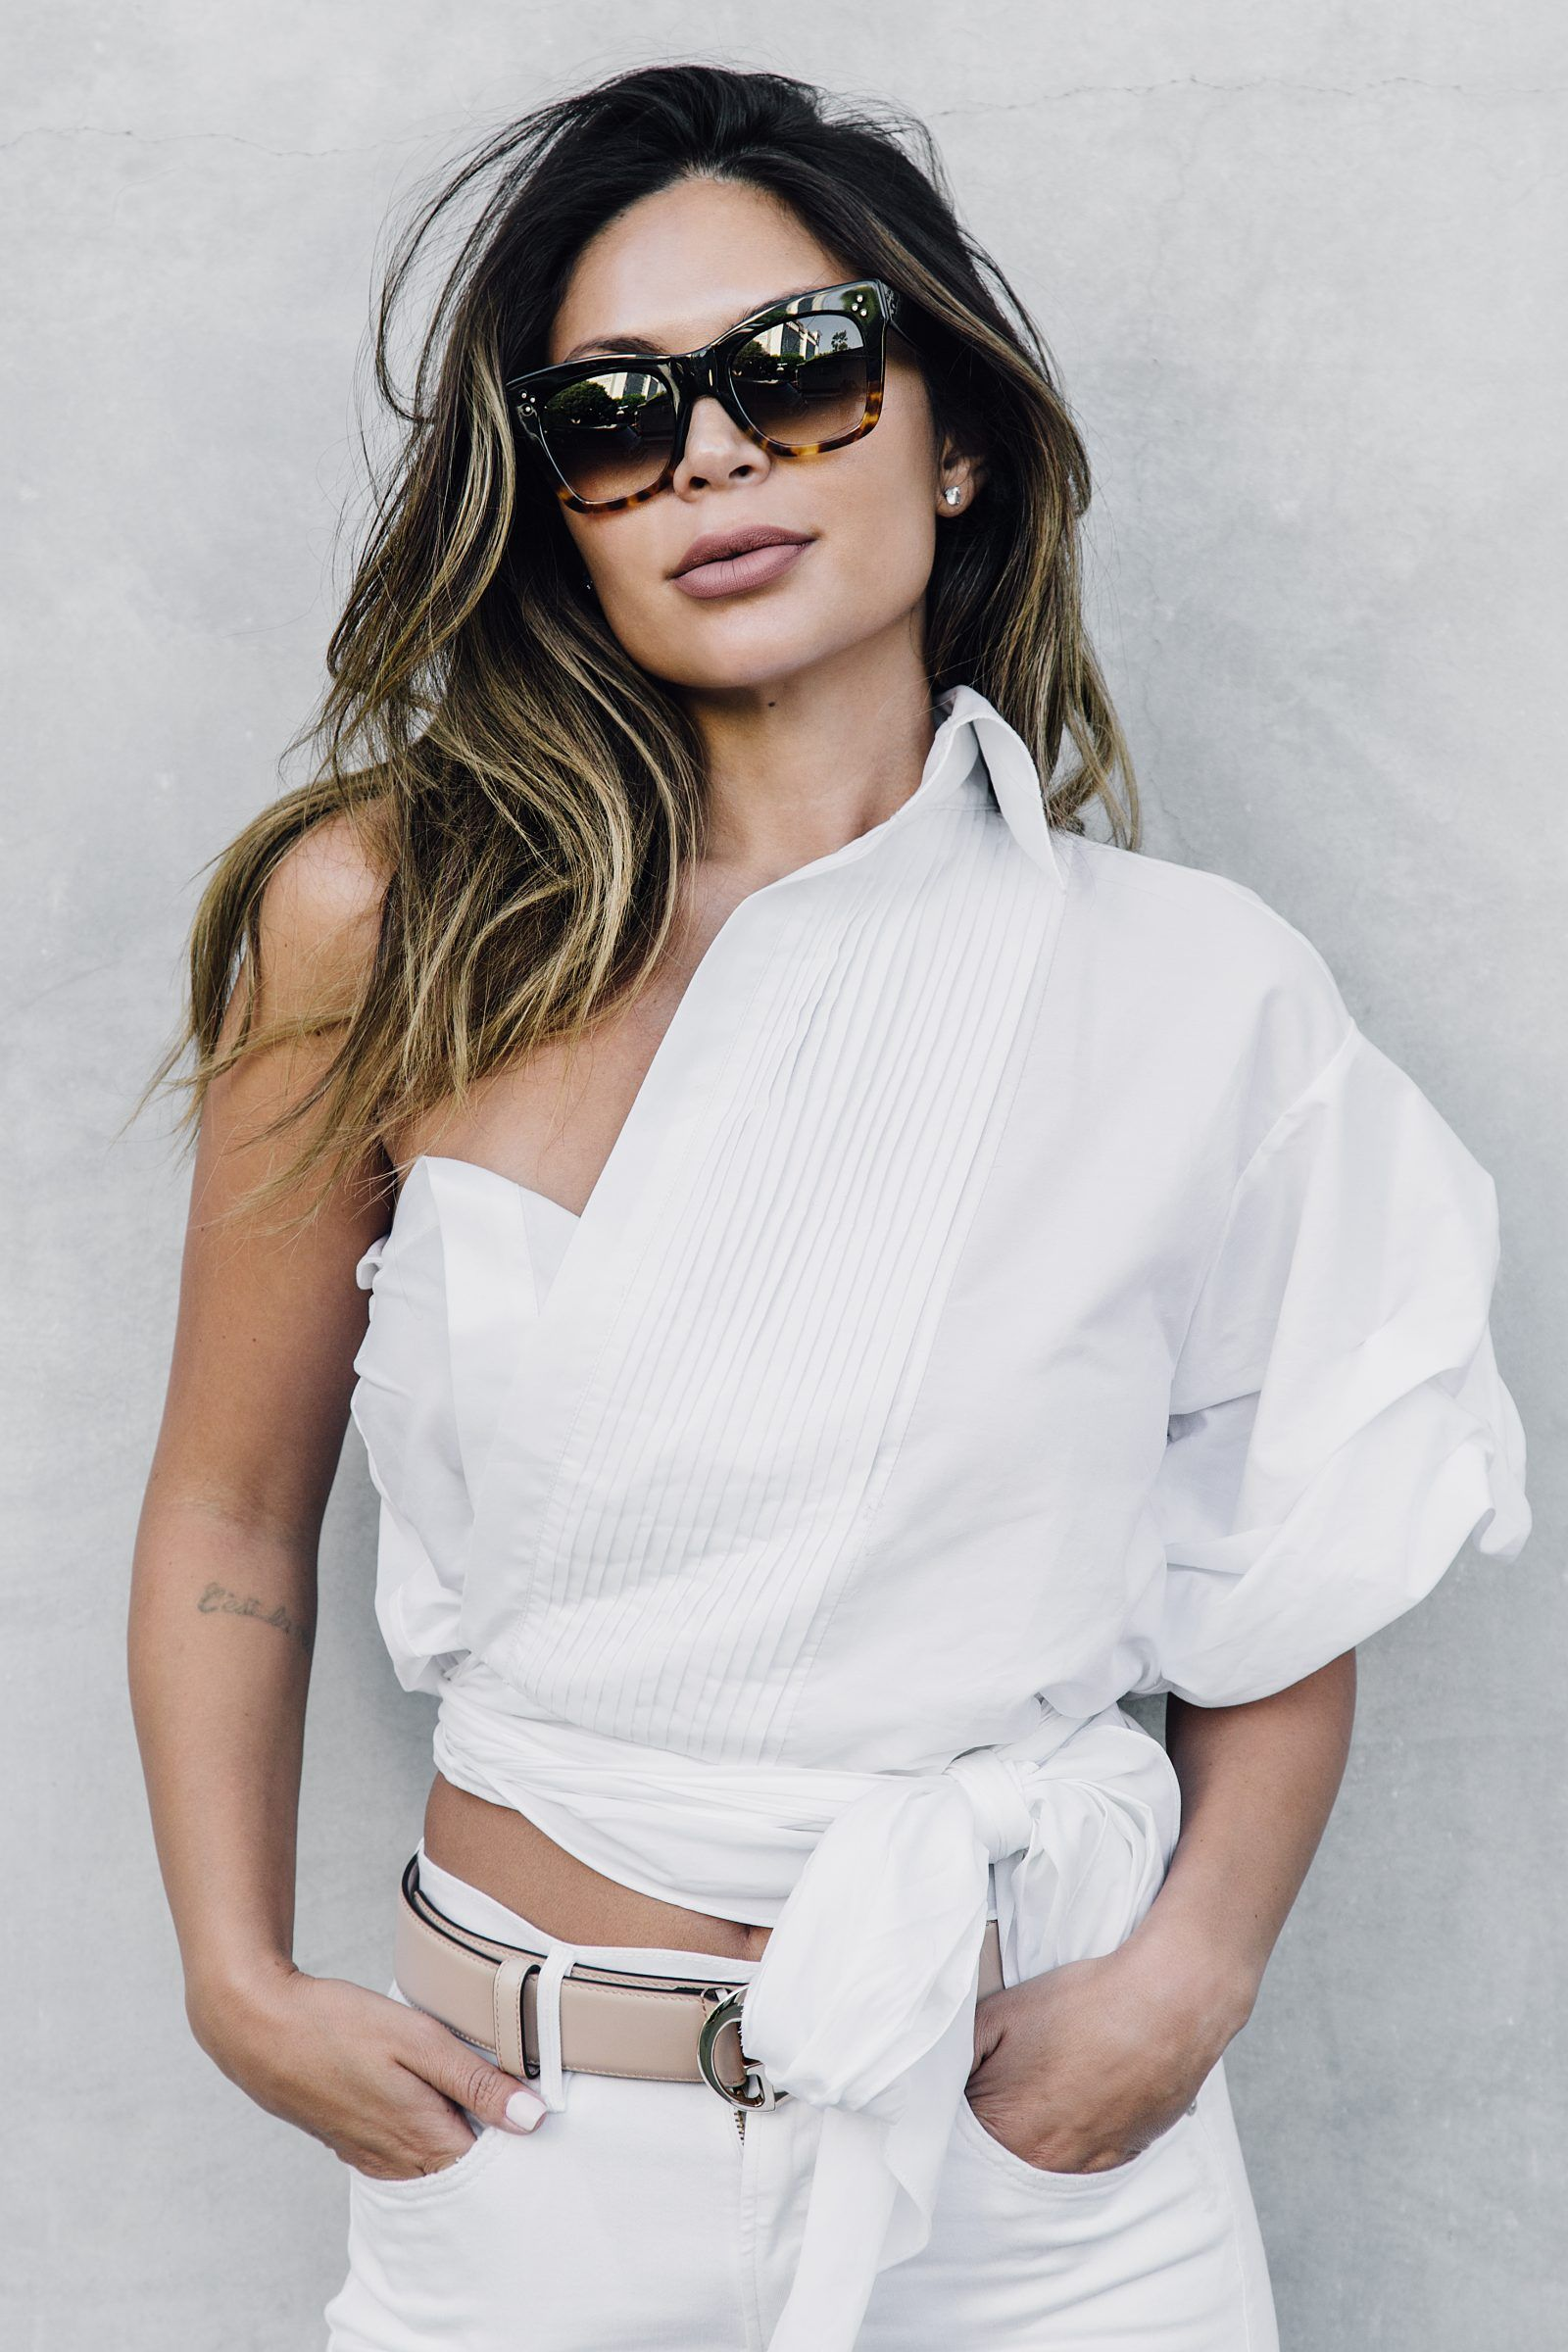 c5bfb4c5f69d MARIANNA HEWITT BLOGGER OUTFIT HAIR POST - NOT YOUR BASIC WHITE SHIRT -  GUCCI BAG BELT SHOES - LIFE WITH ME